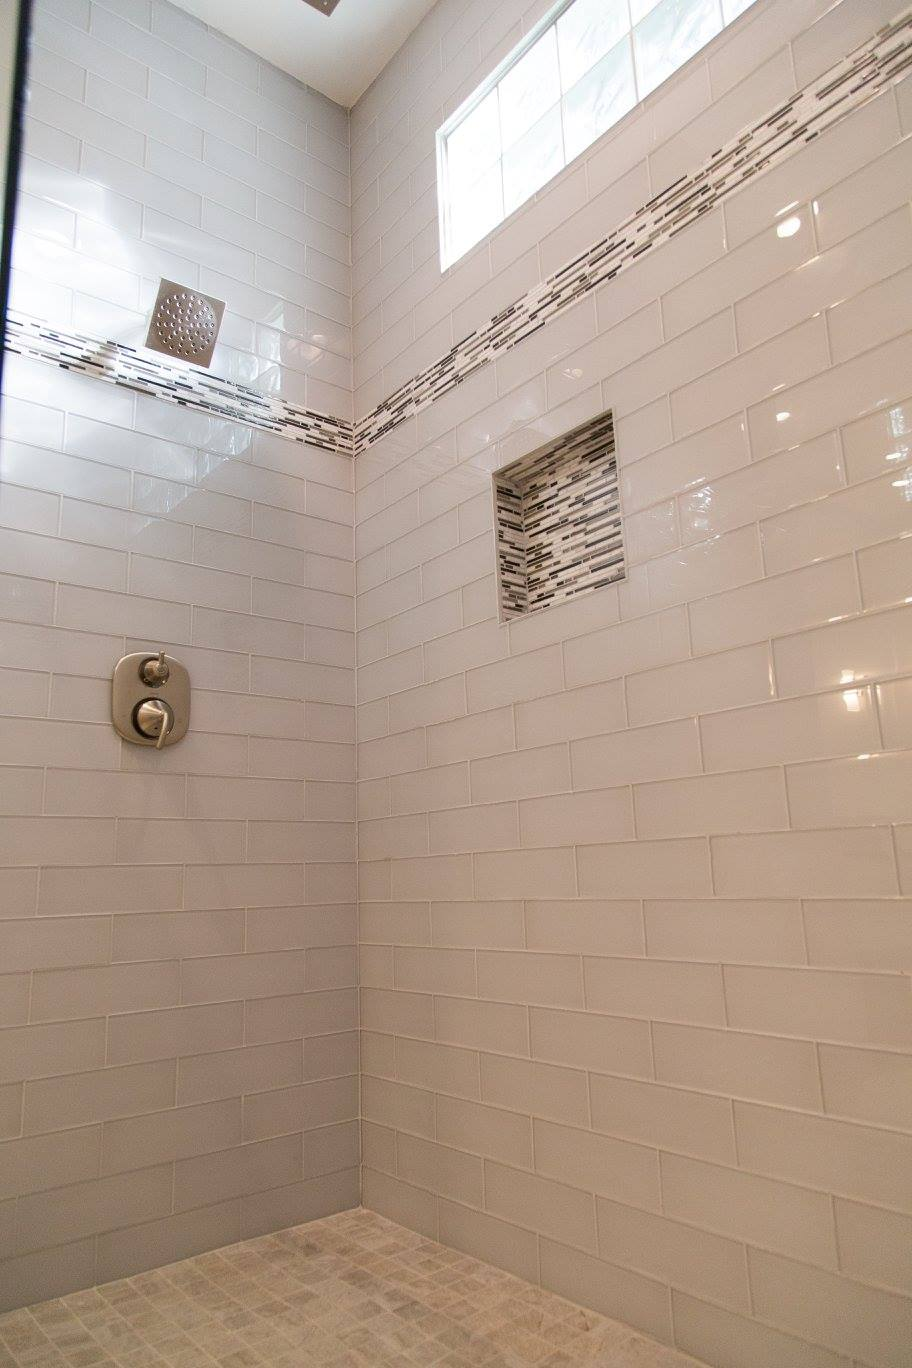 Shower Tile Renovation in Savannah Georgia